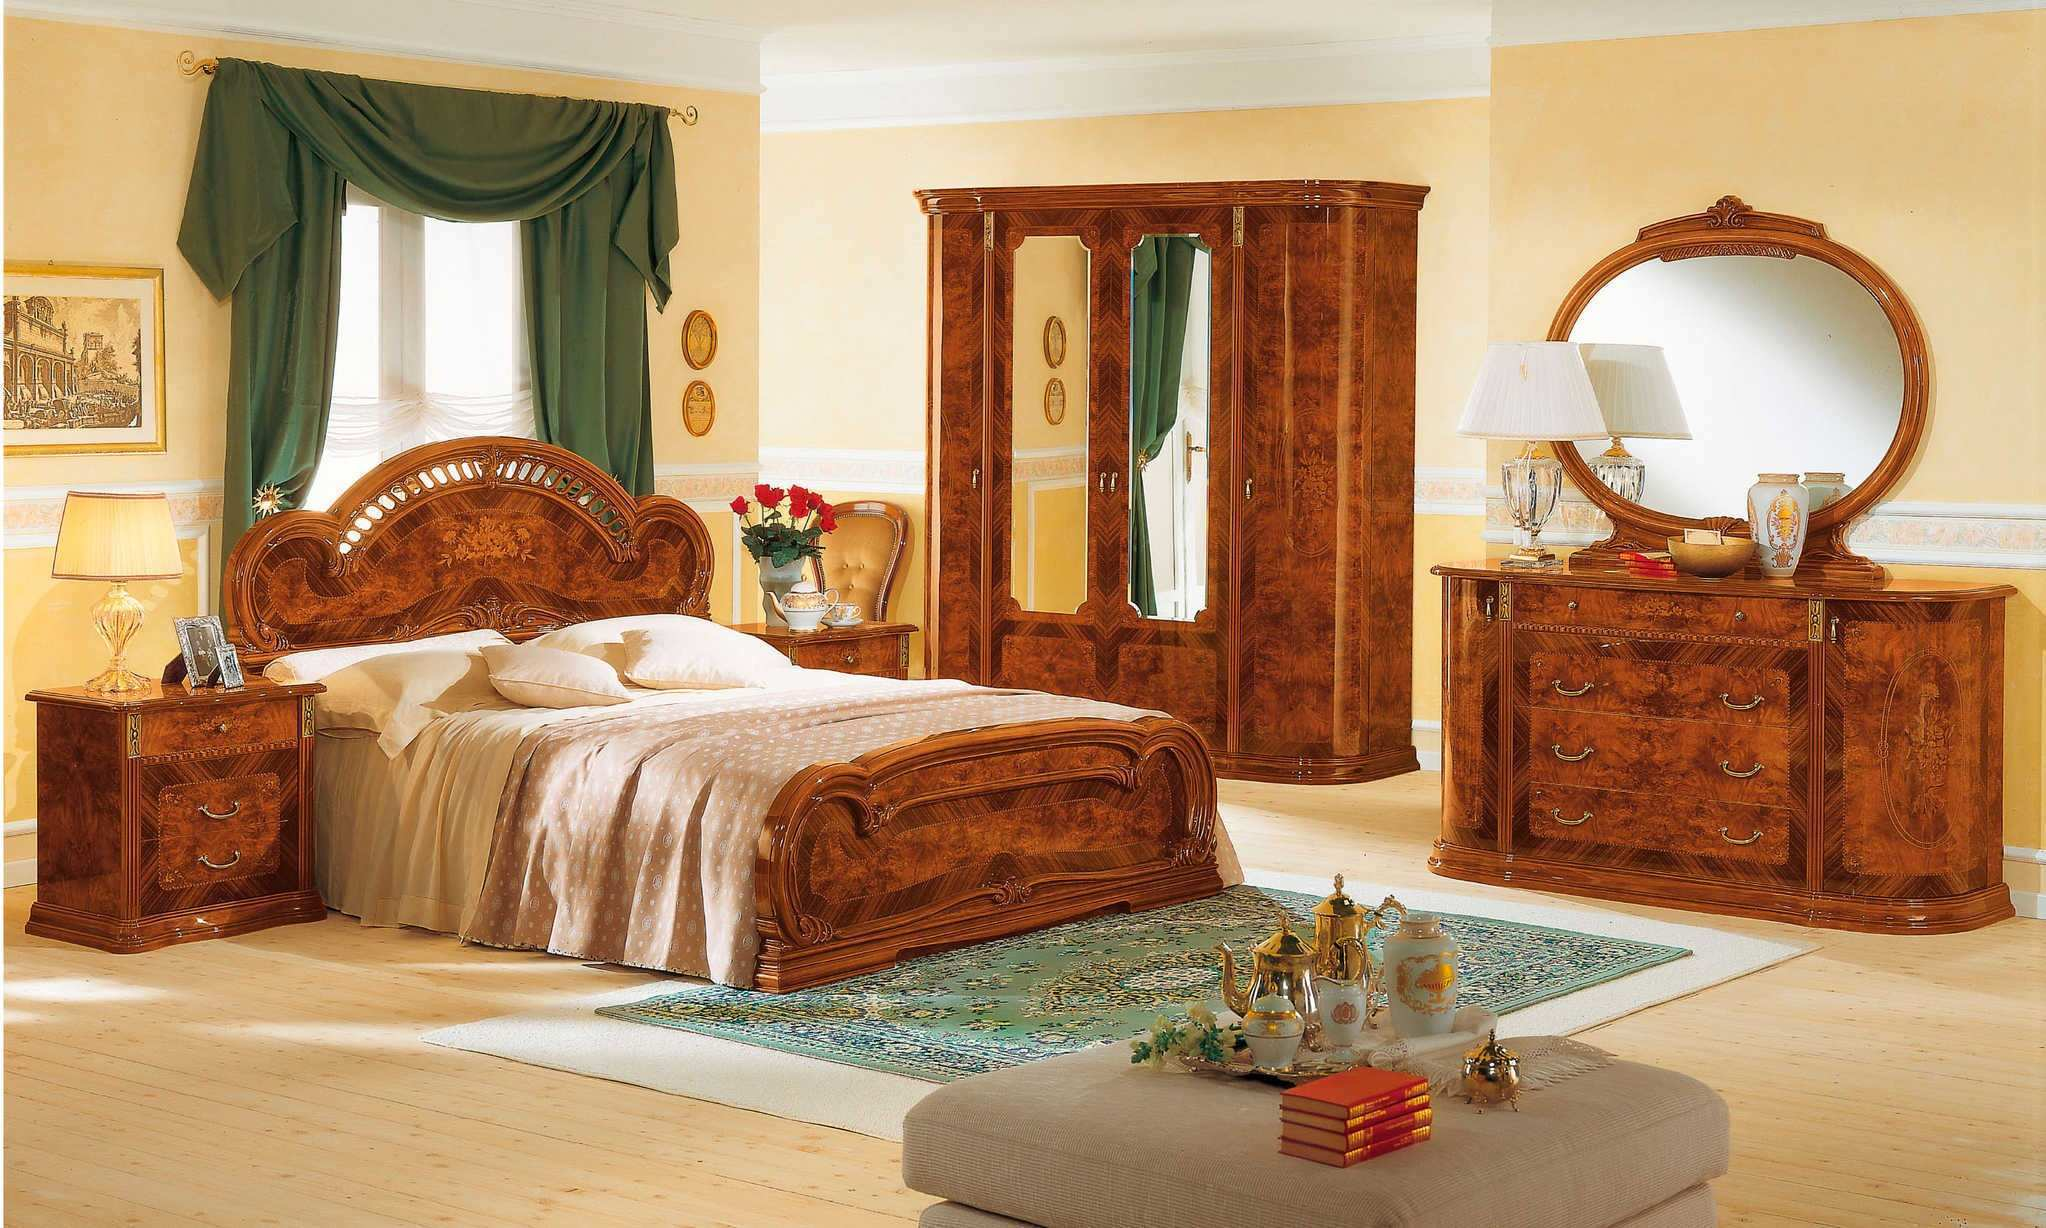 Free Download Image Best Of solid Wood Bedroom Furniture 650 ...